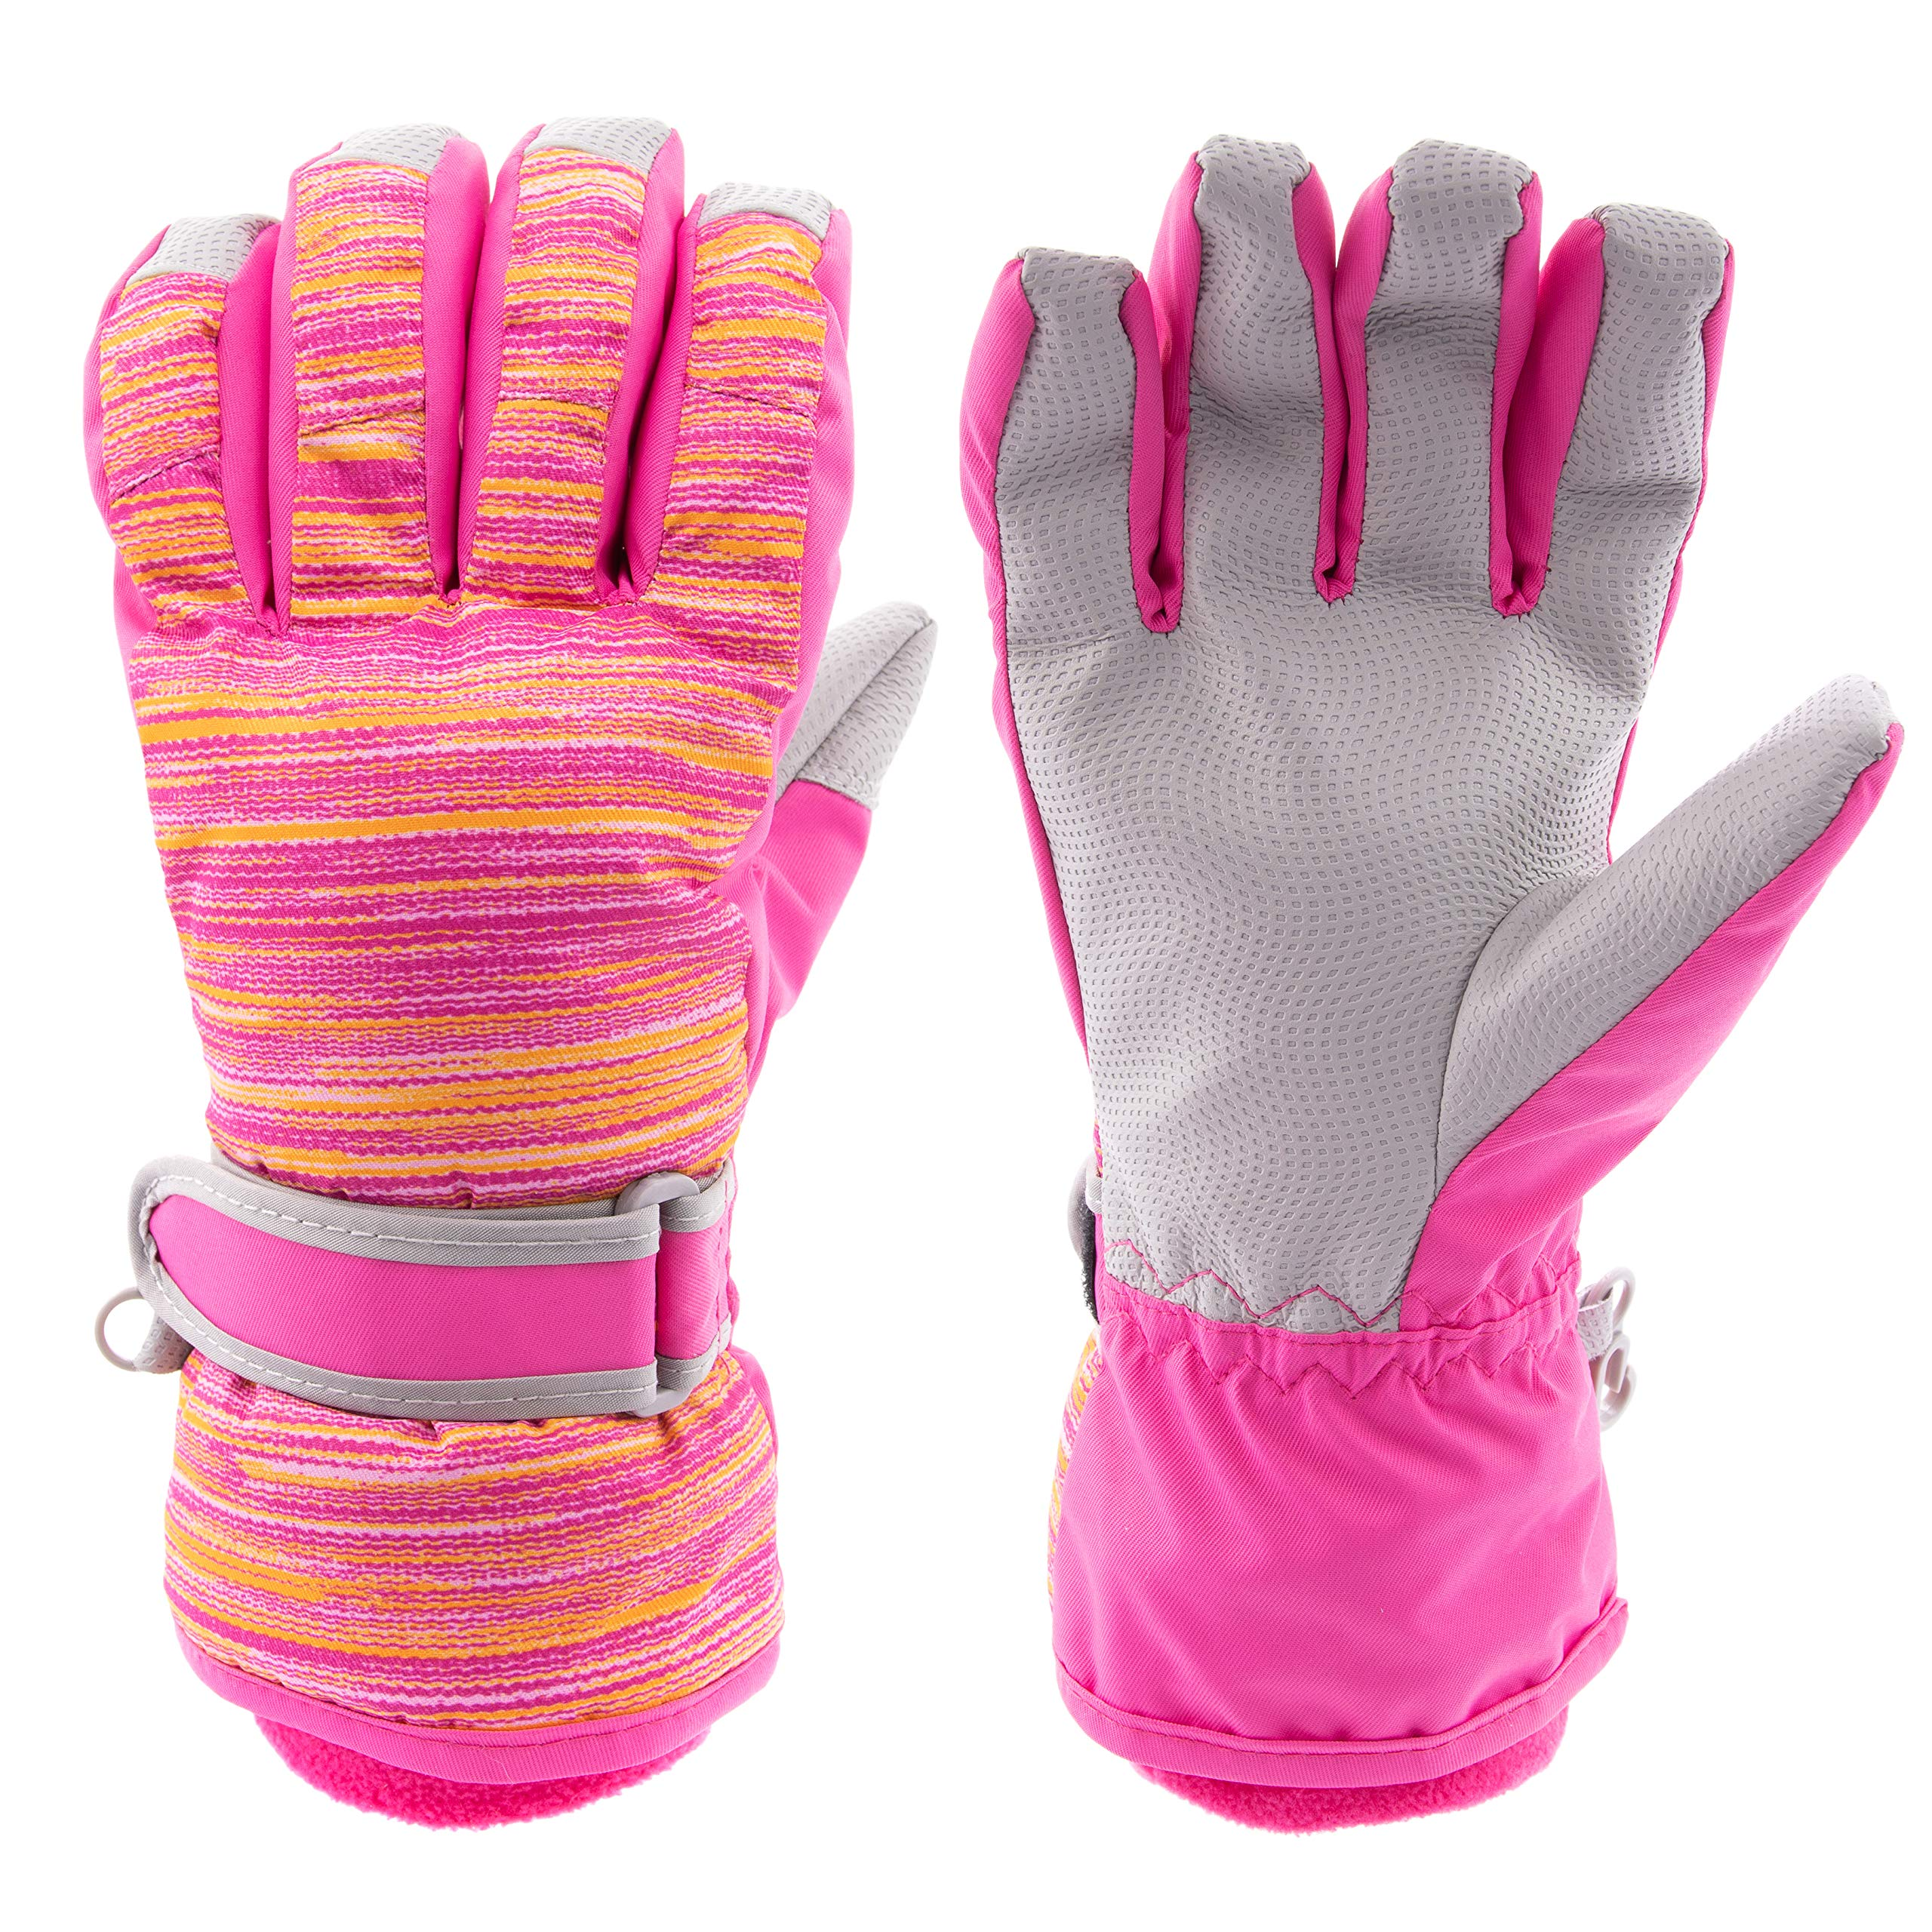 Arctic Quest Kids Boys and Girls Thermal Insulated Performance Water Resistant Windproof Winter Ski and Snowboarding Gloves